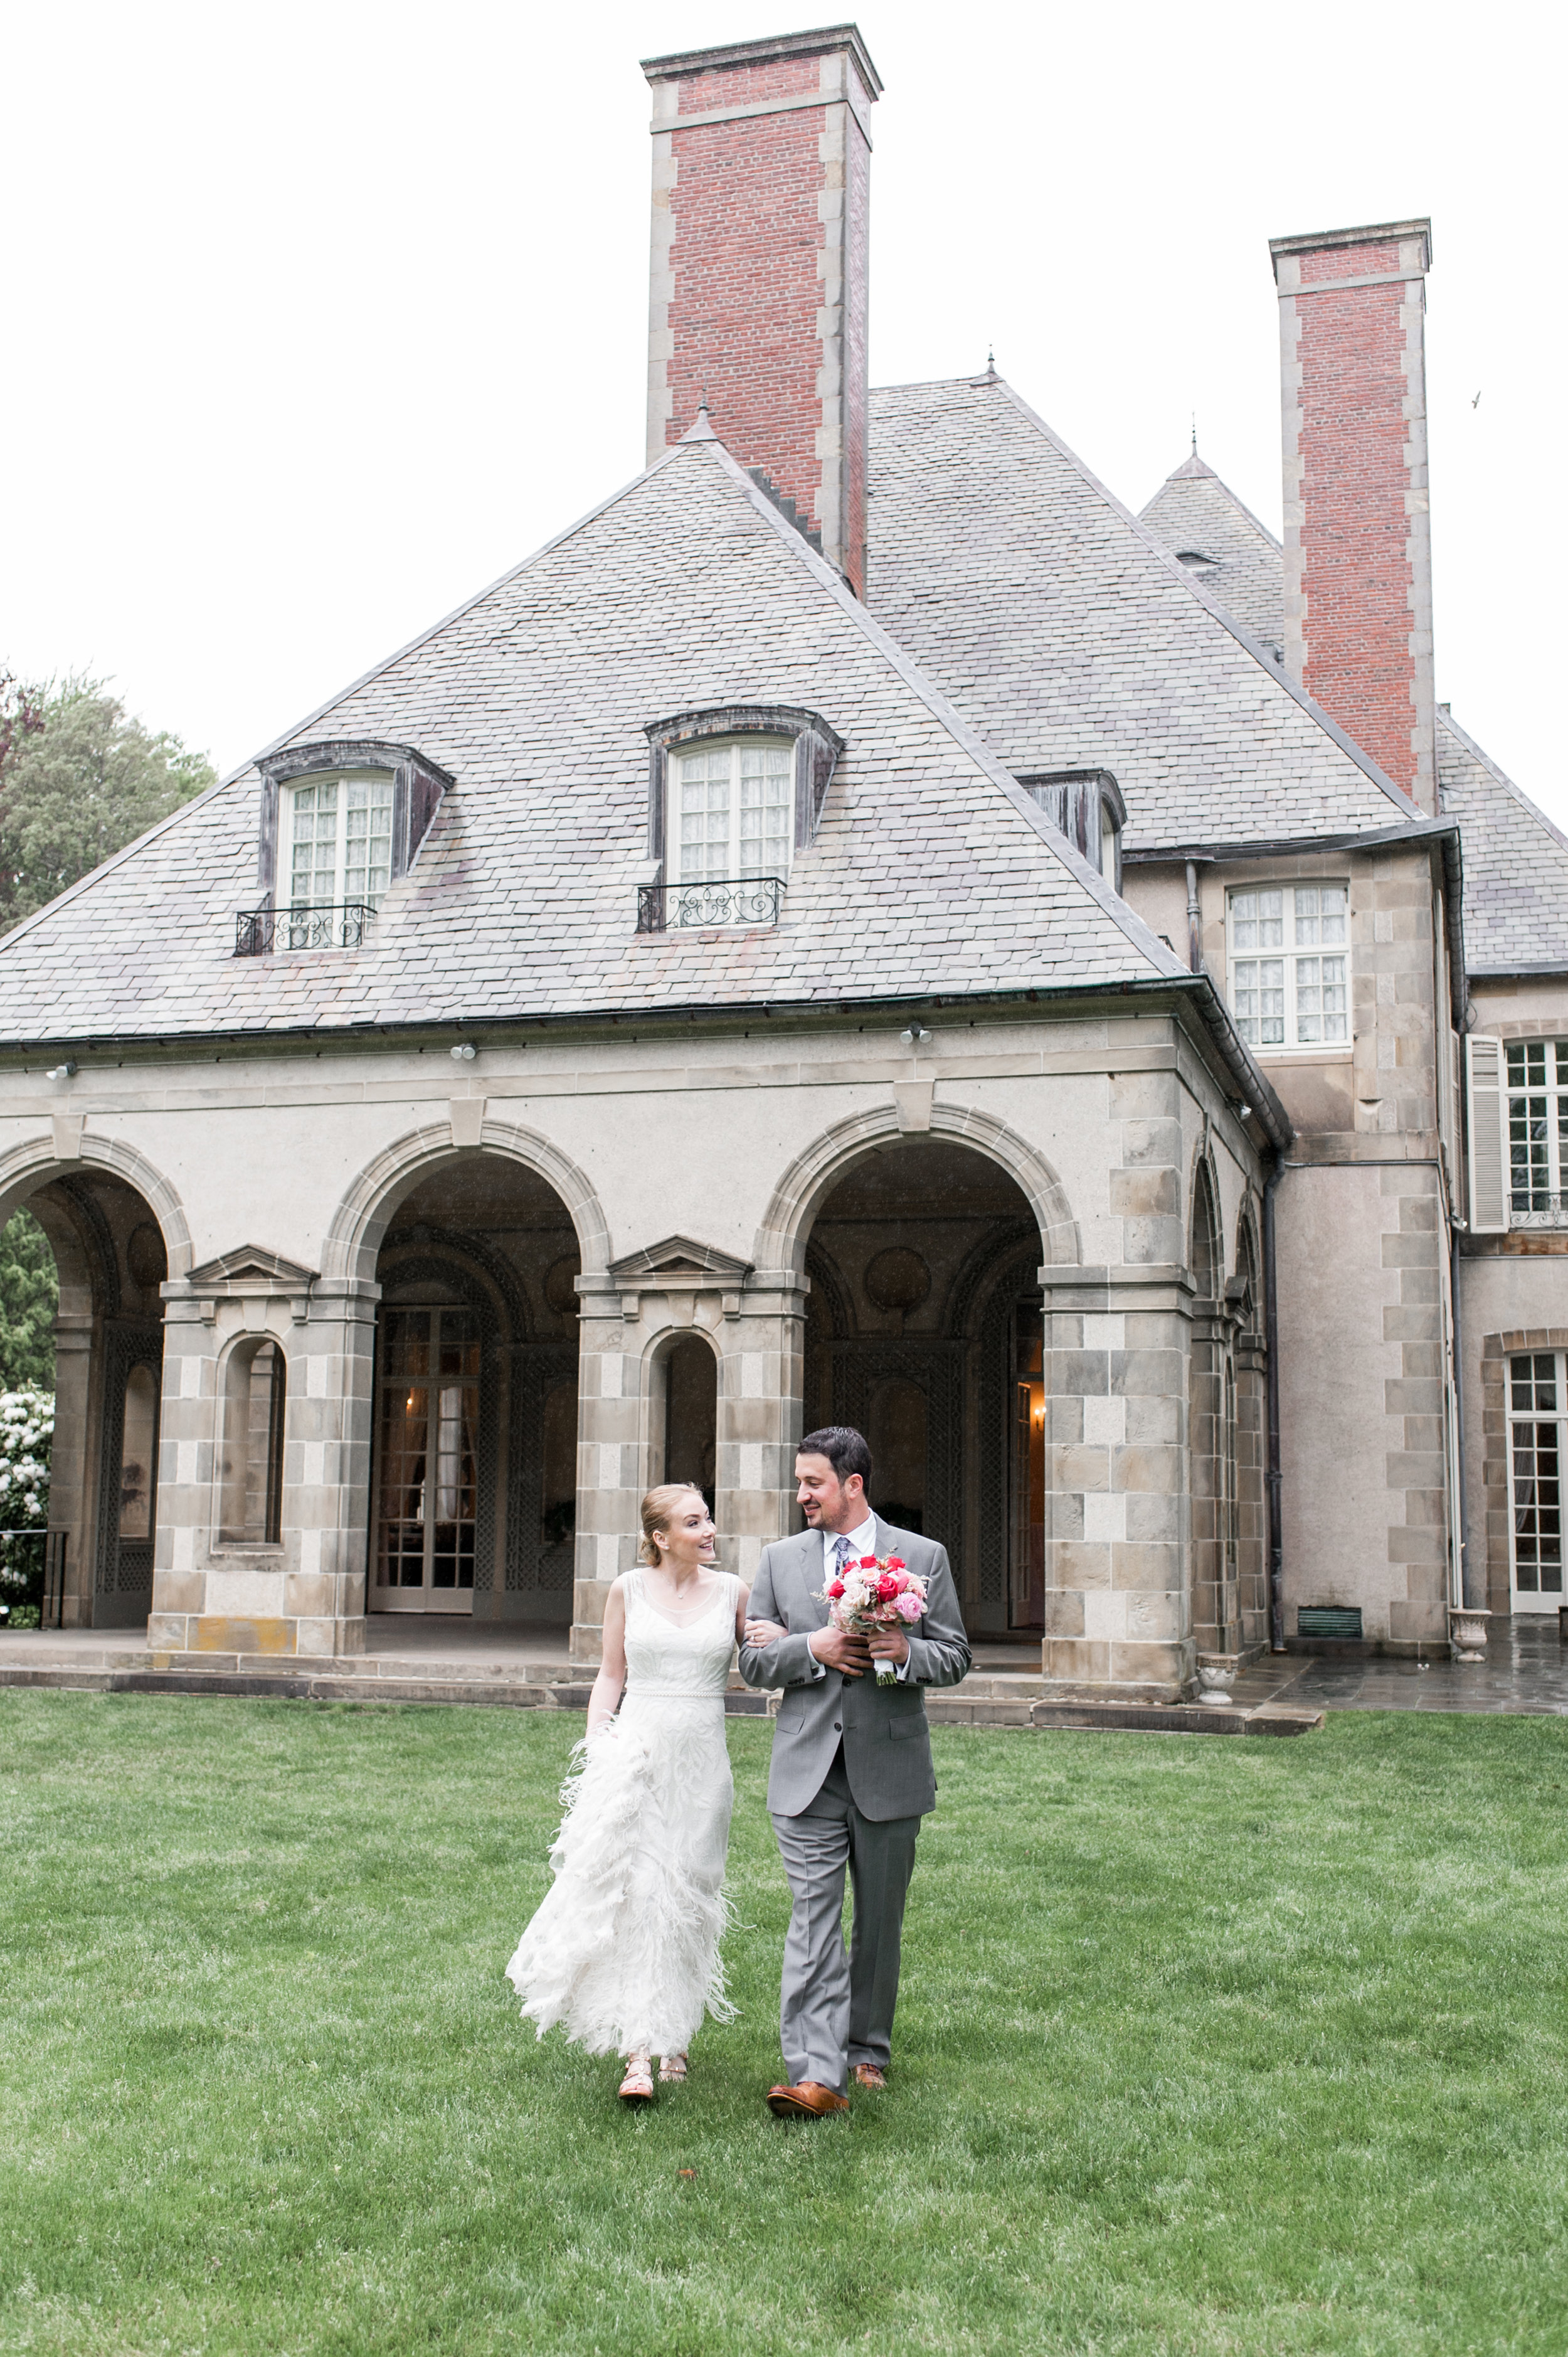 A+Z's Old World Romantic Estate Wedding at Glen Manor House in Portsmouth, RI